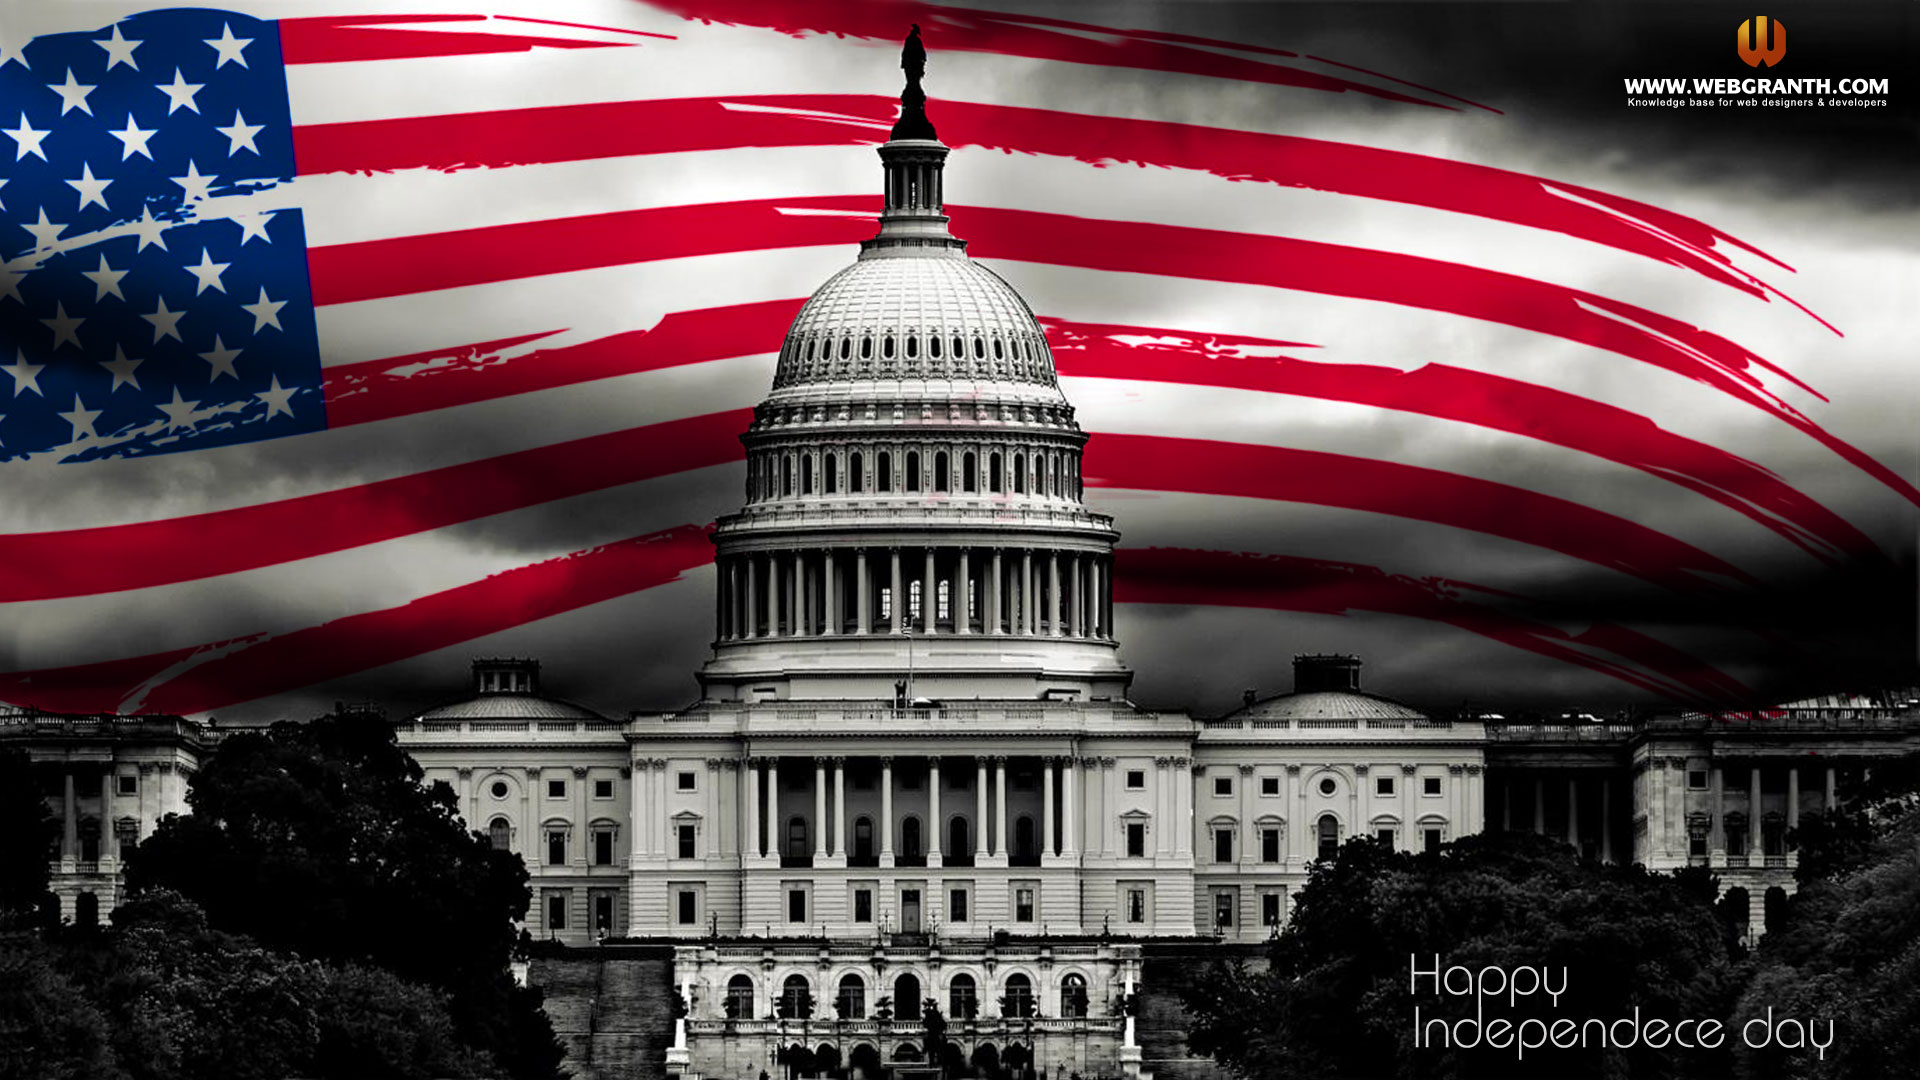 4th of July WallpapersDesktop Wallpaper Independence Day USA downjpg 1920x1080